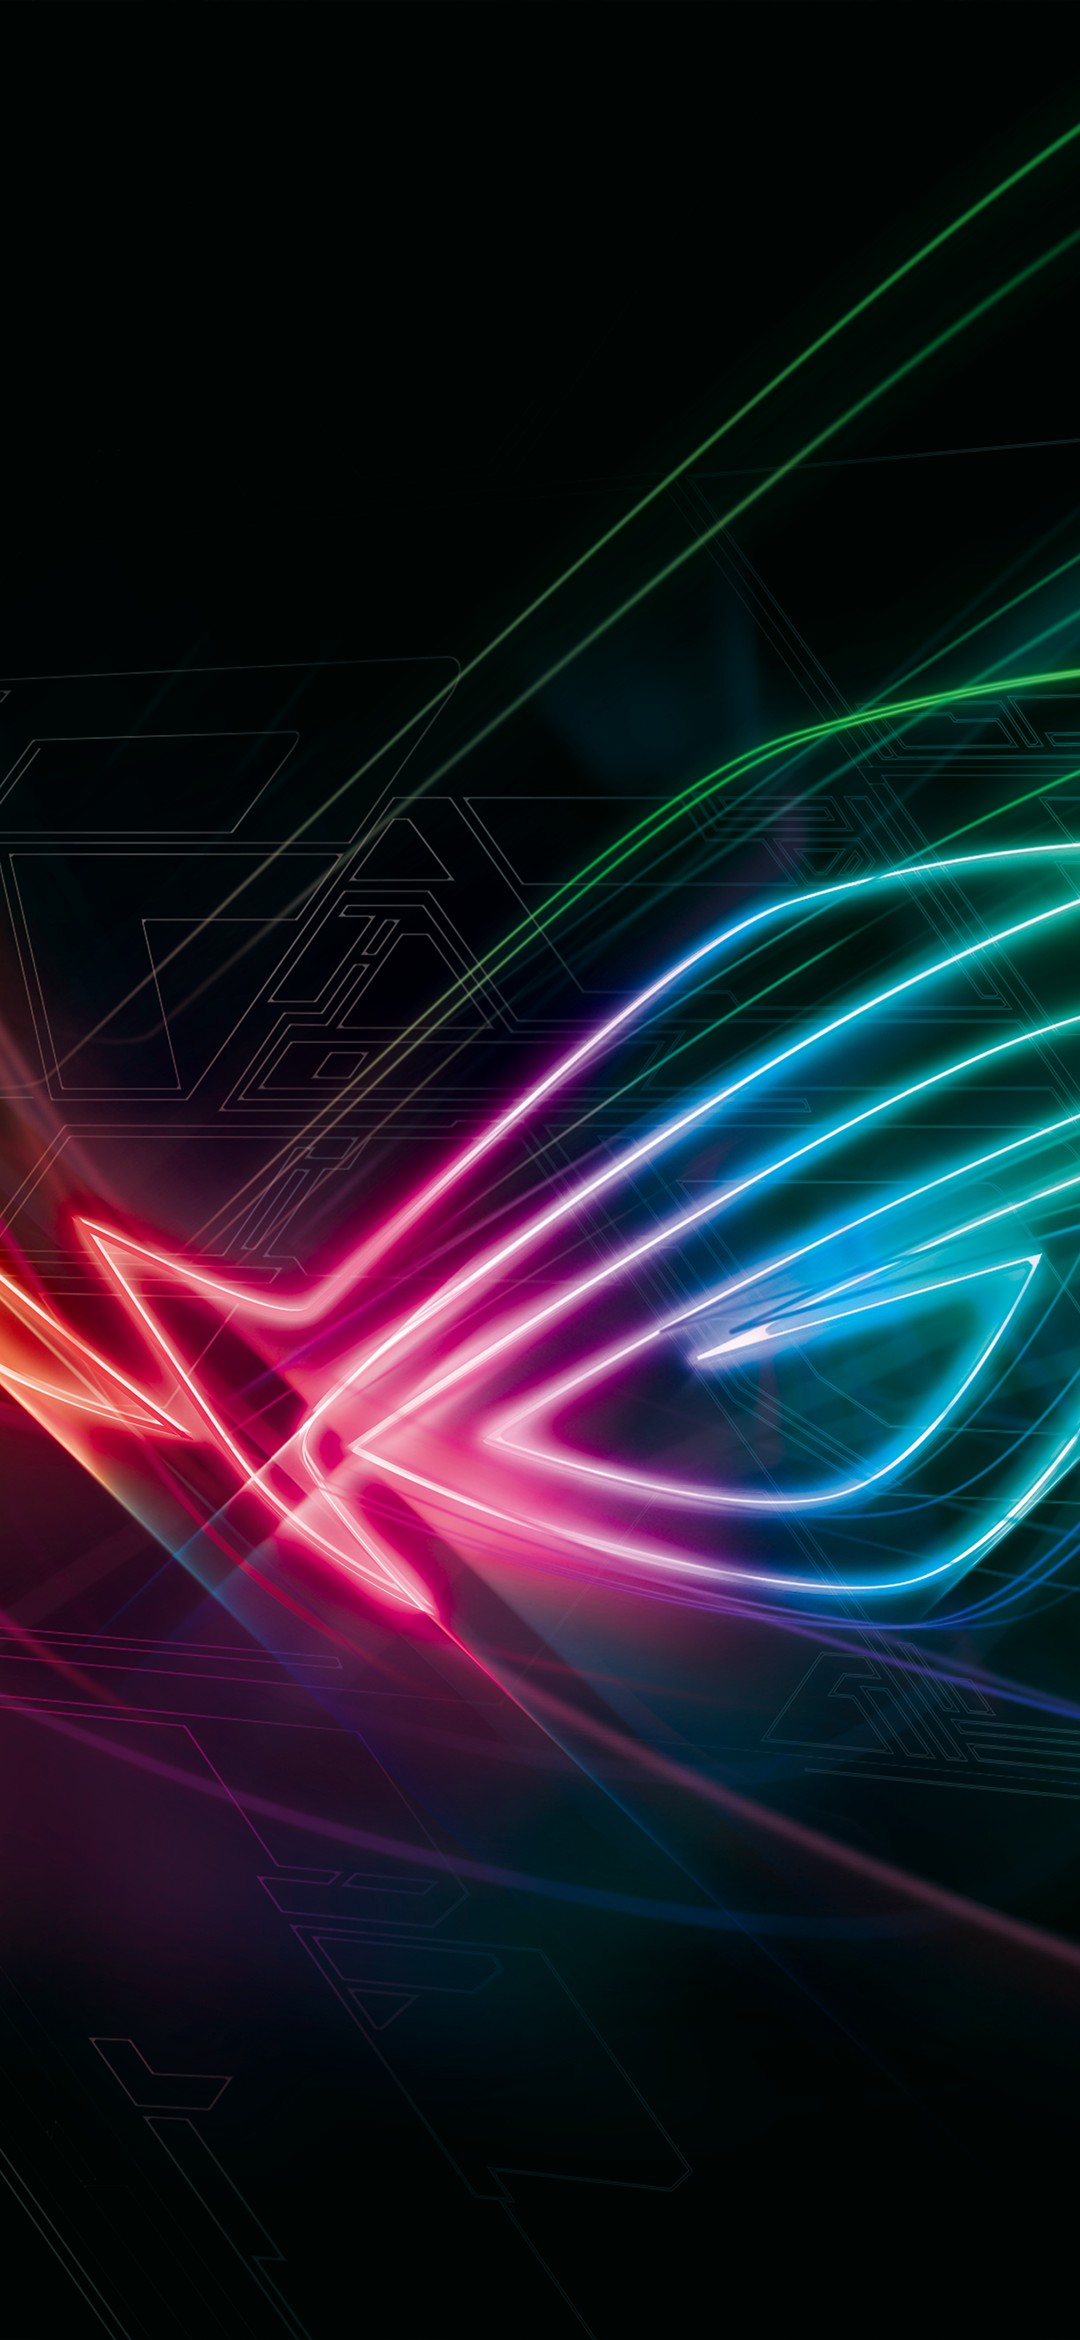 Asus Rog Phone 2 Wallpaper Ytechb Exclusive Android Wallpaper Iphone Homescreen Wallpaper Android Phone Wallpaper